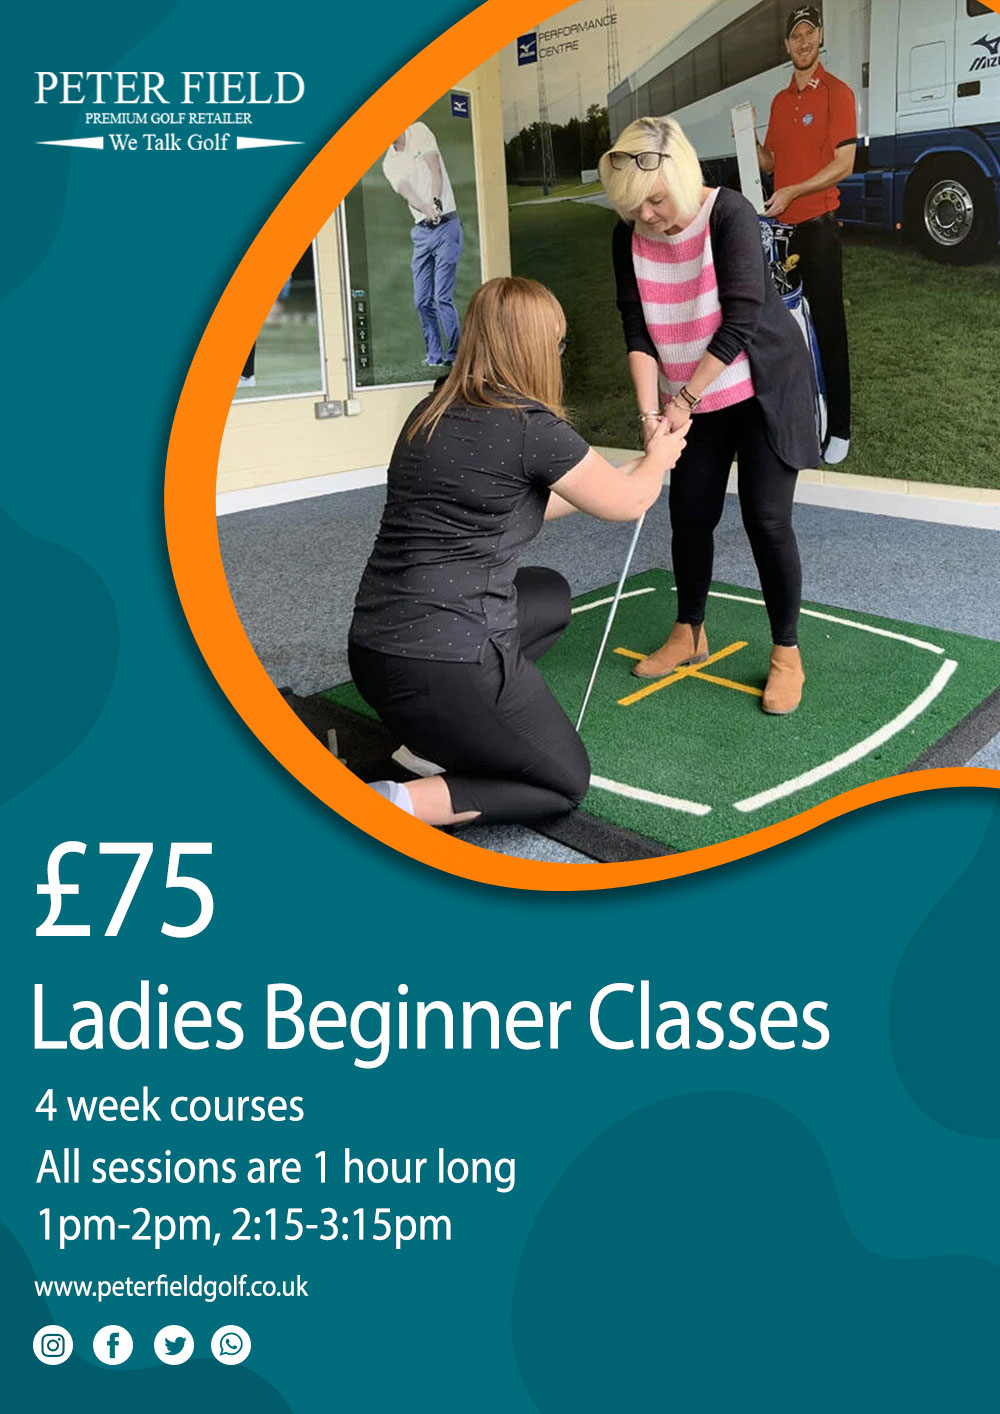 Ladies begginers golf lessons at peter field golf club PGA pro norwich norfolk